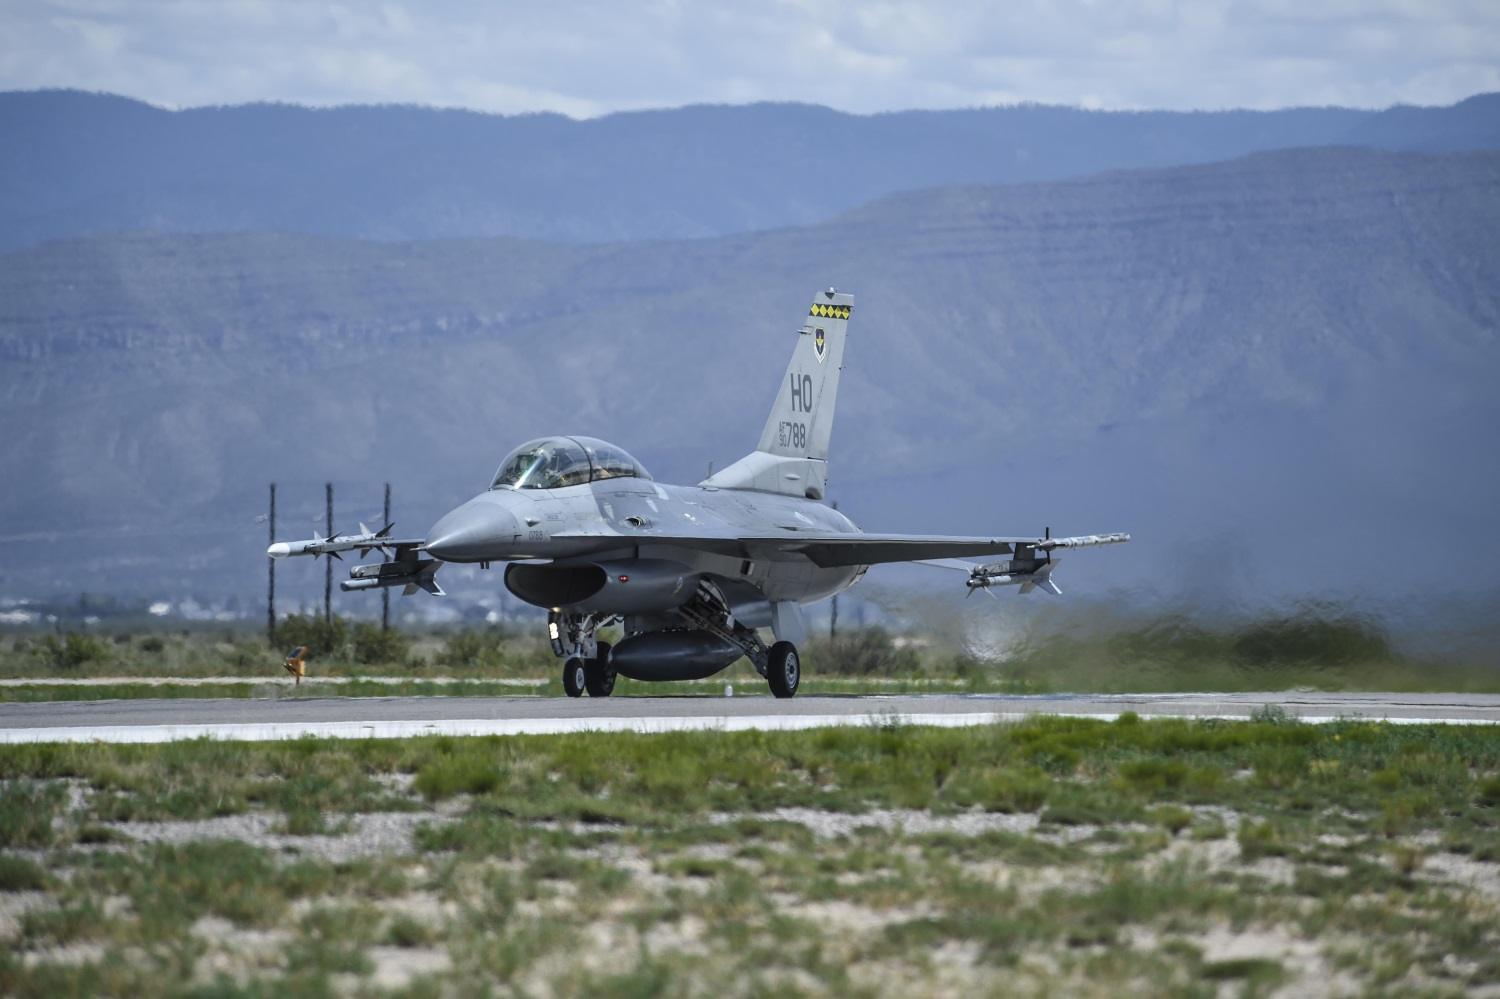 holloman air force base chatrooms Get the latest news on holloman air force base continuing coverage of breaking news, updates and events from the alamogordo daily news.